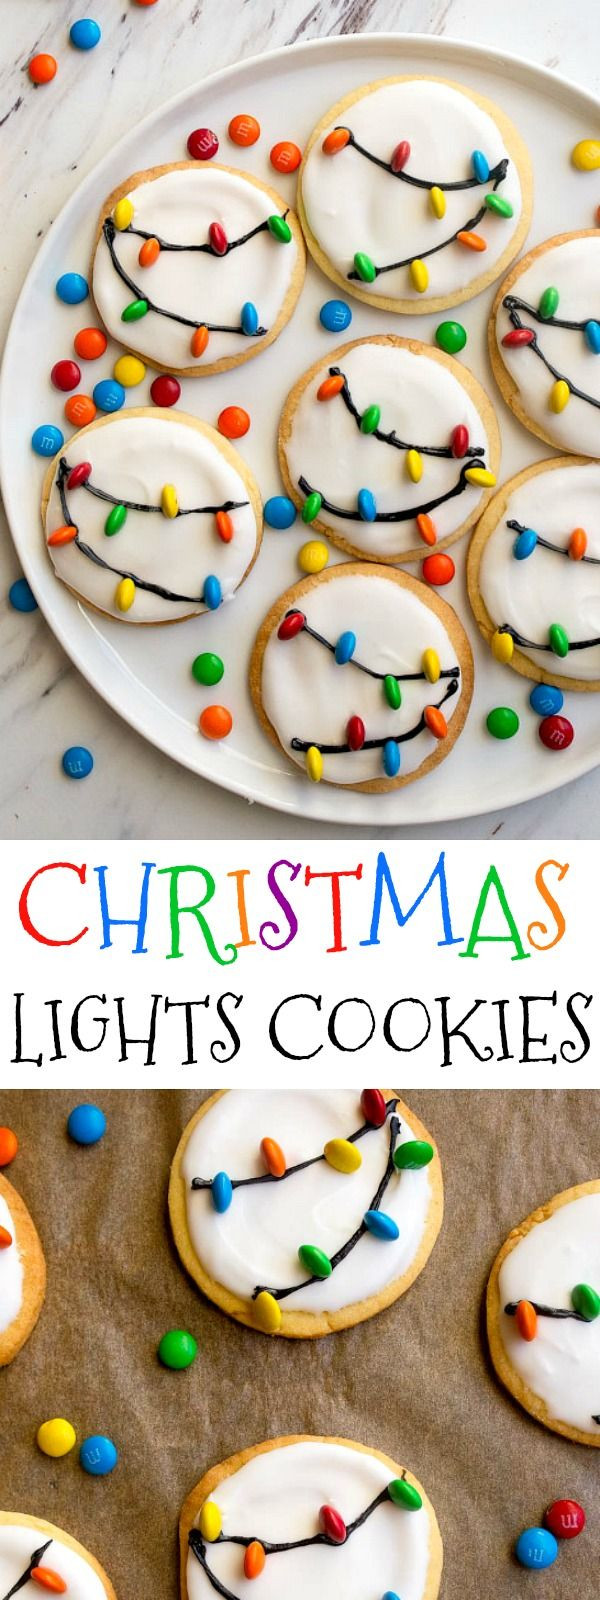 America'S Test Kitchen Christmas Cookies  best Bloggers Best Baking Recipes images on